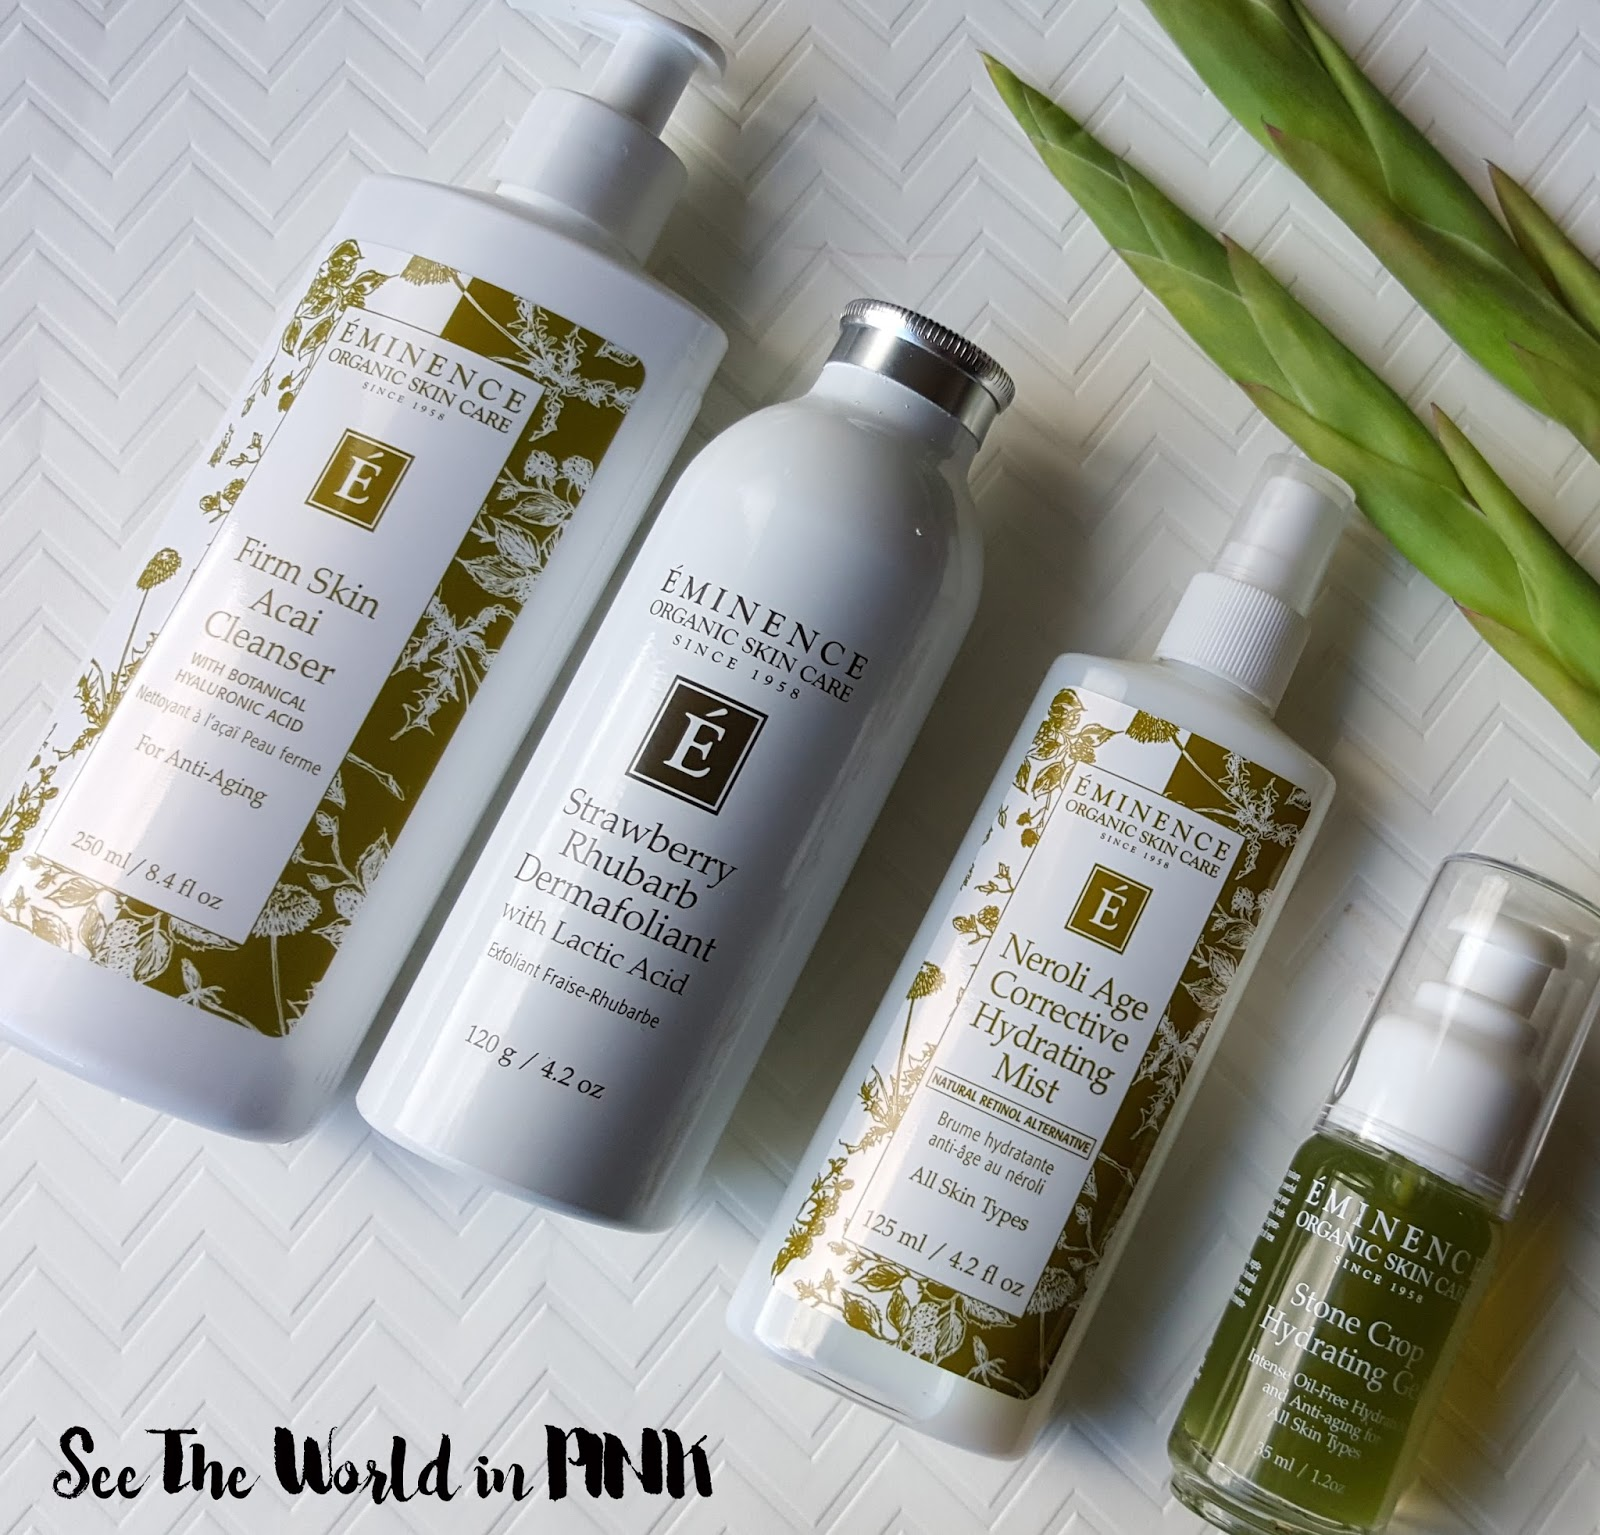 Eminence Skin's Solace From The Sun